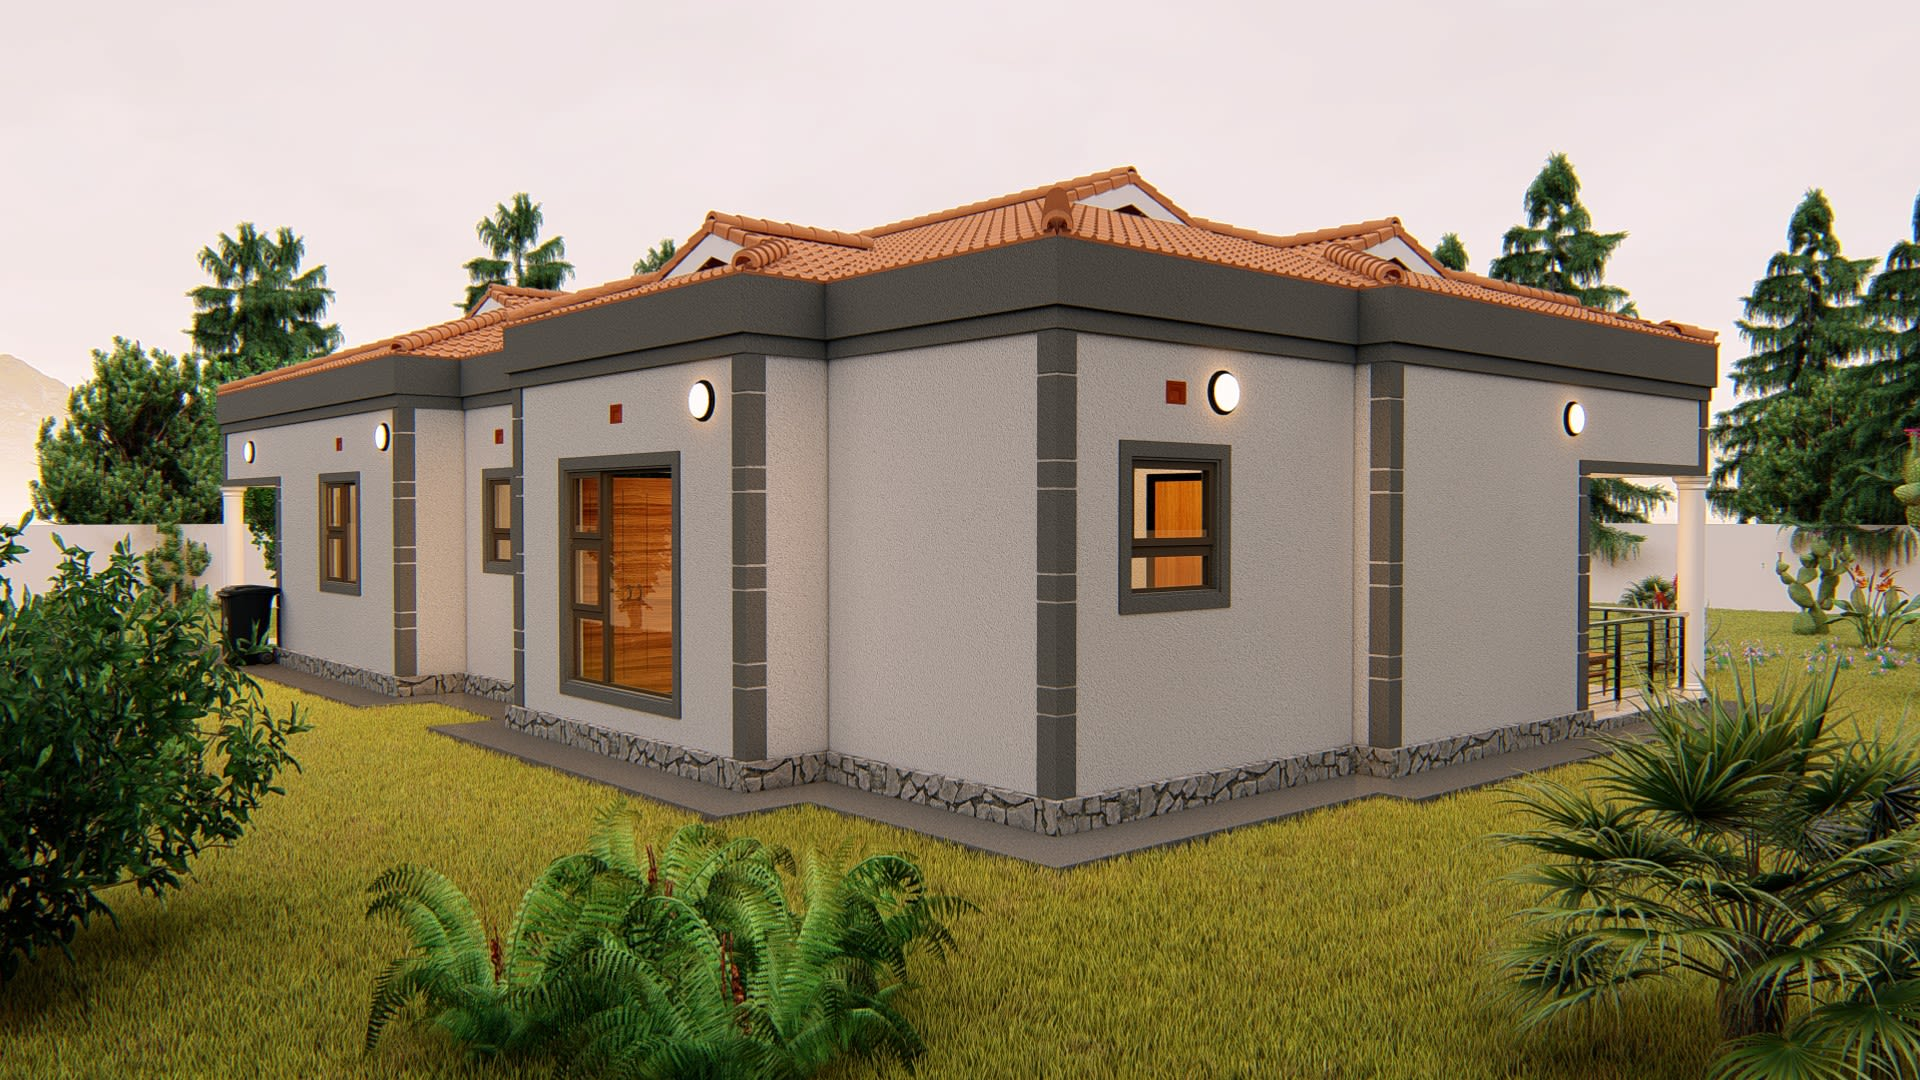 House plans and exterior design by Shakeszikodze